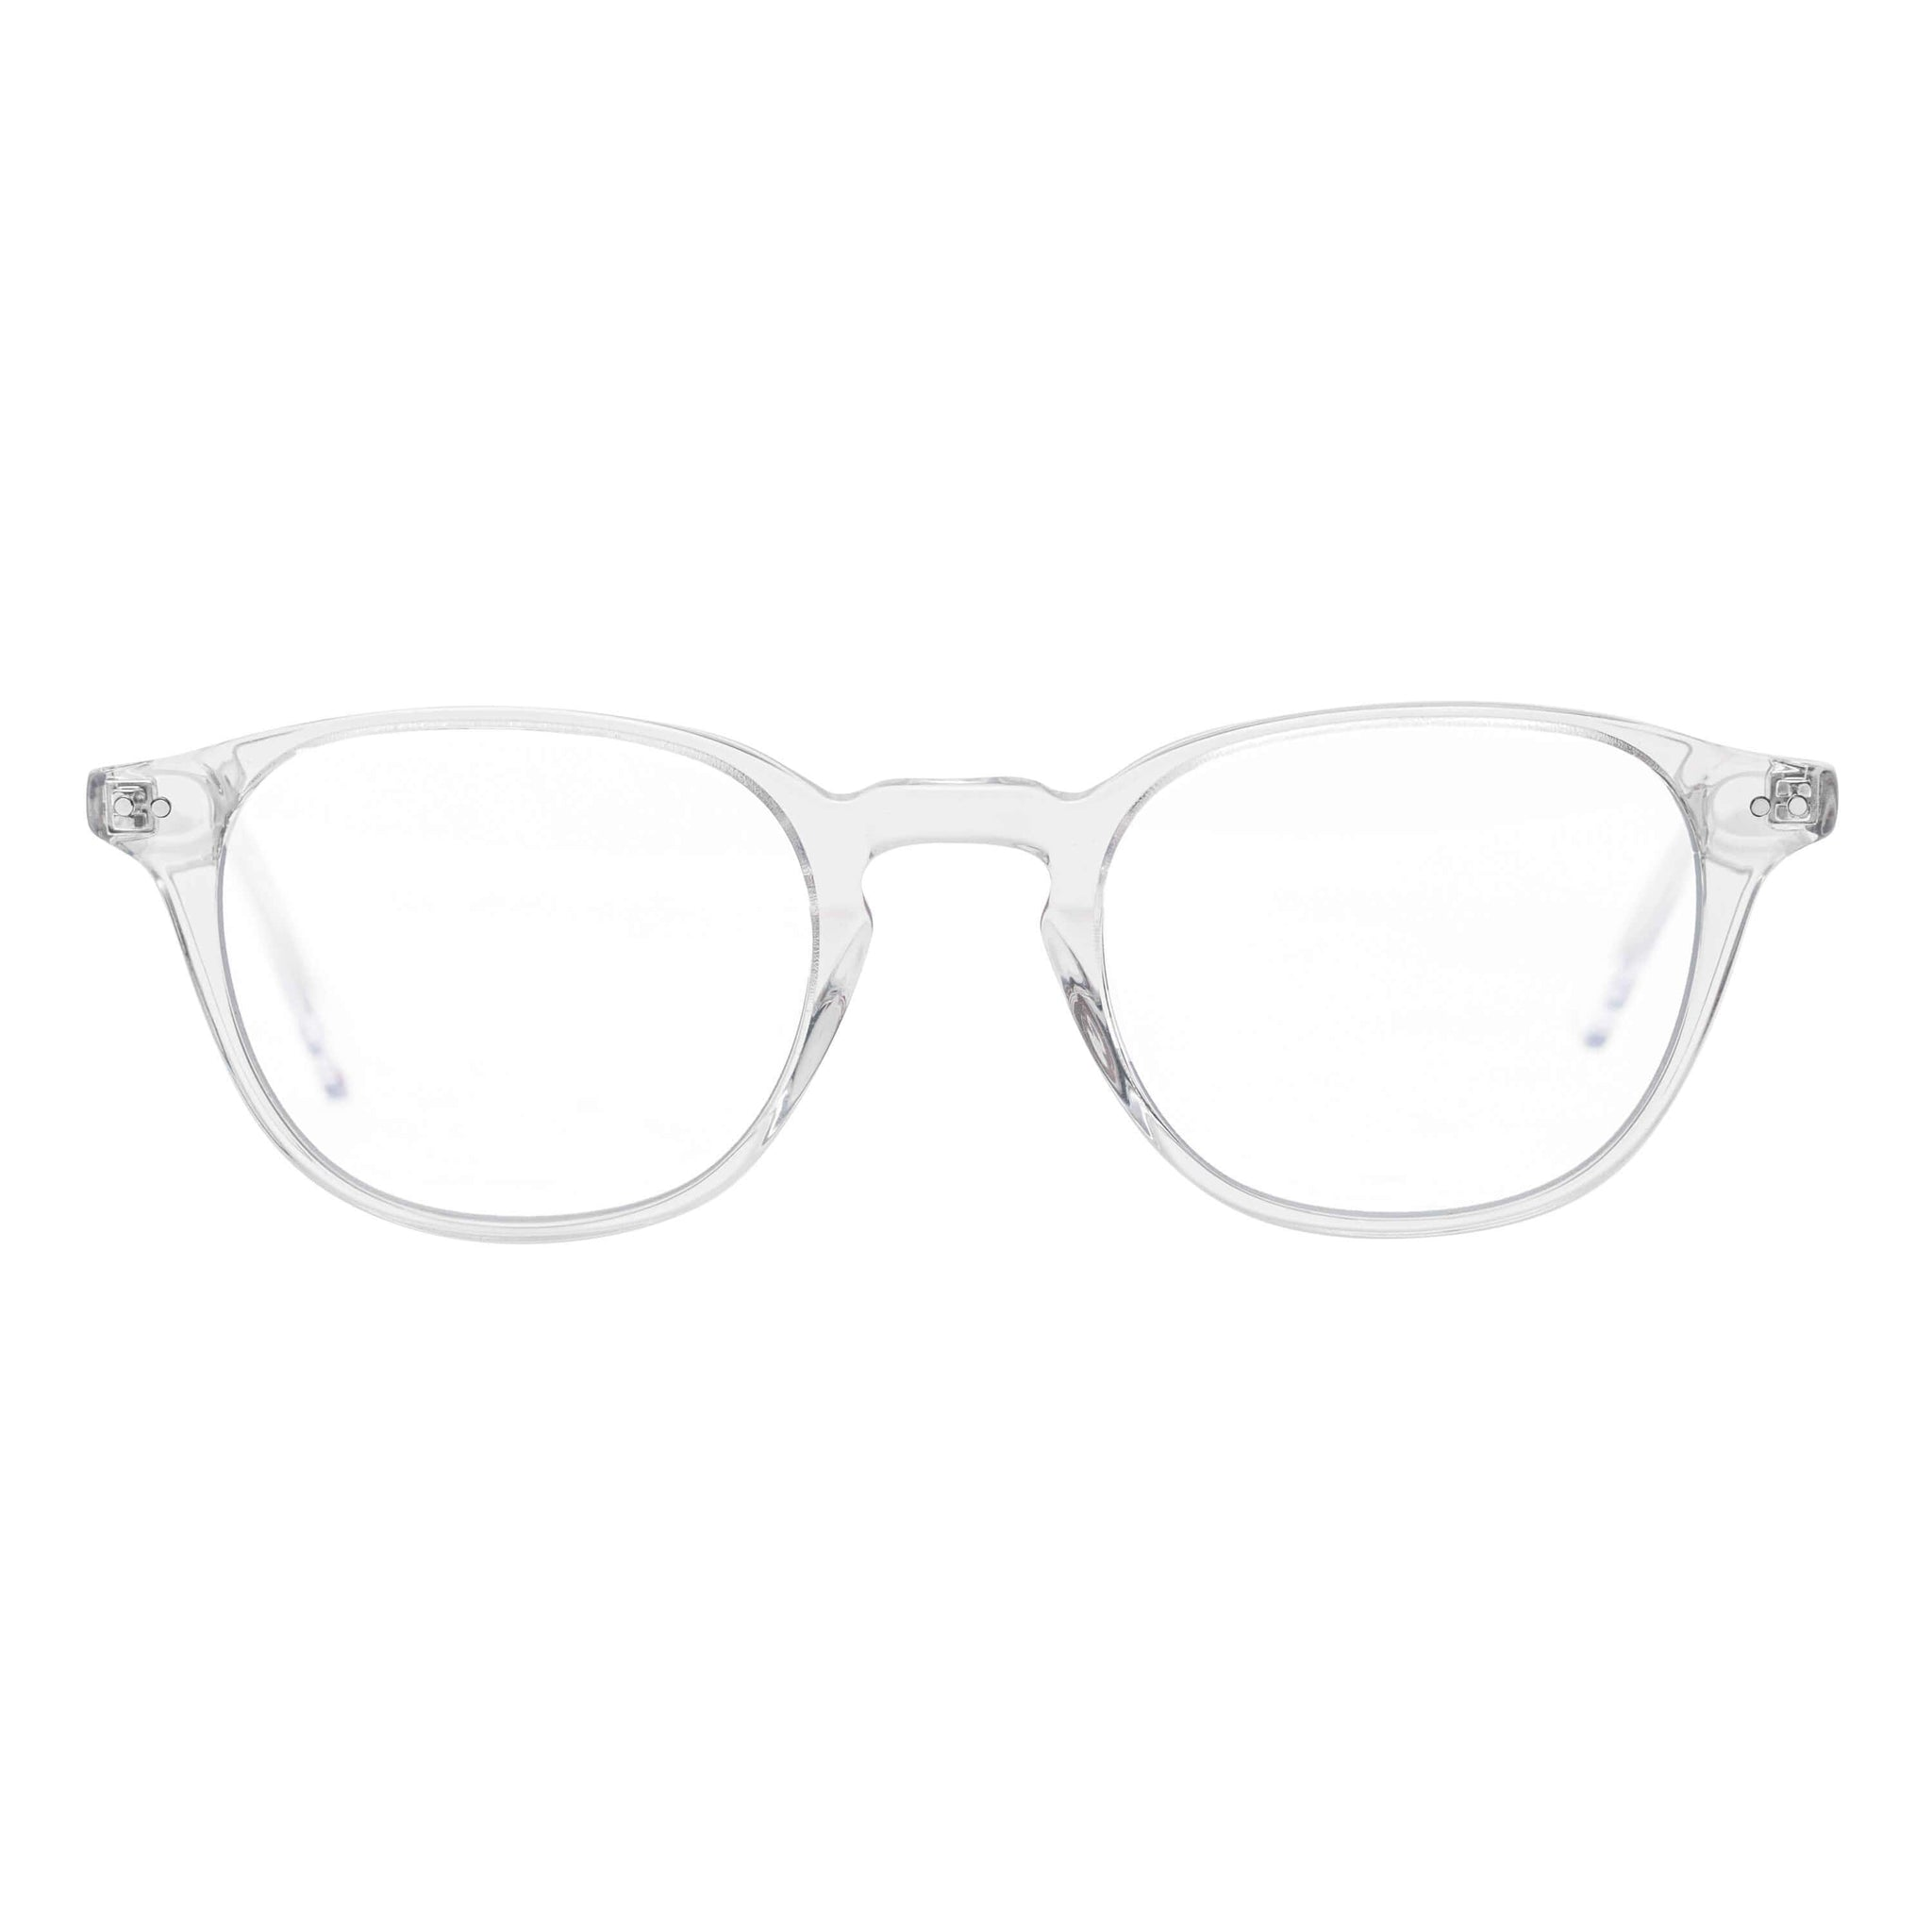 Clear blue ray glasses